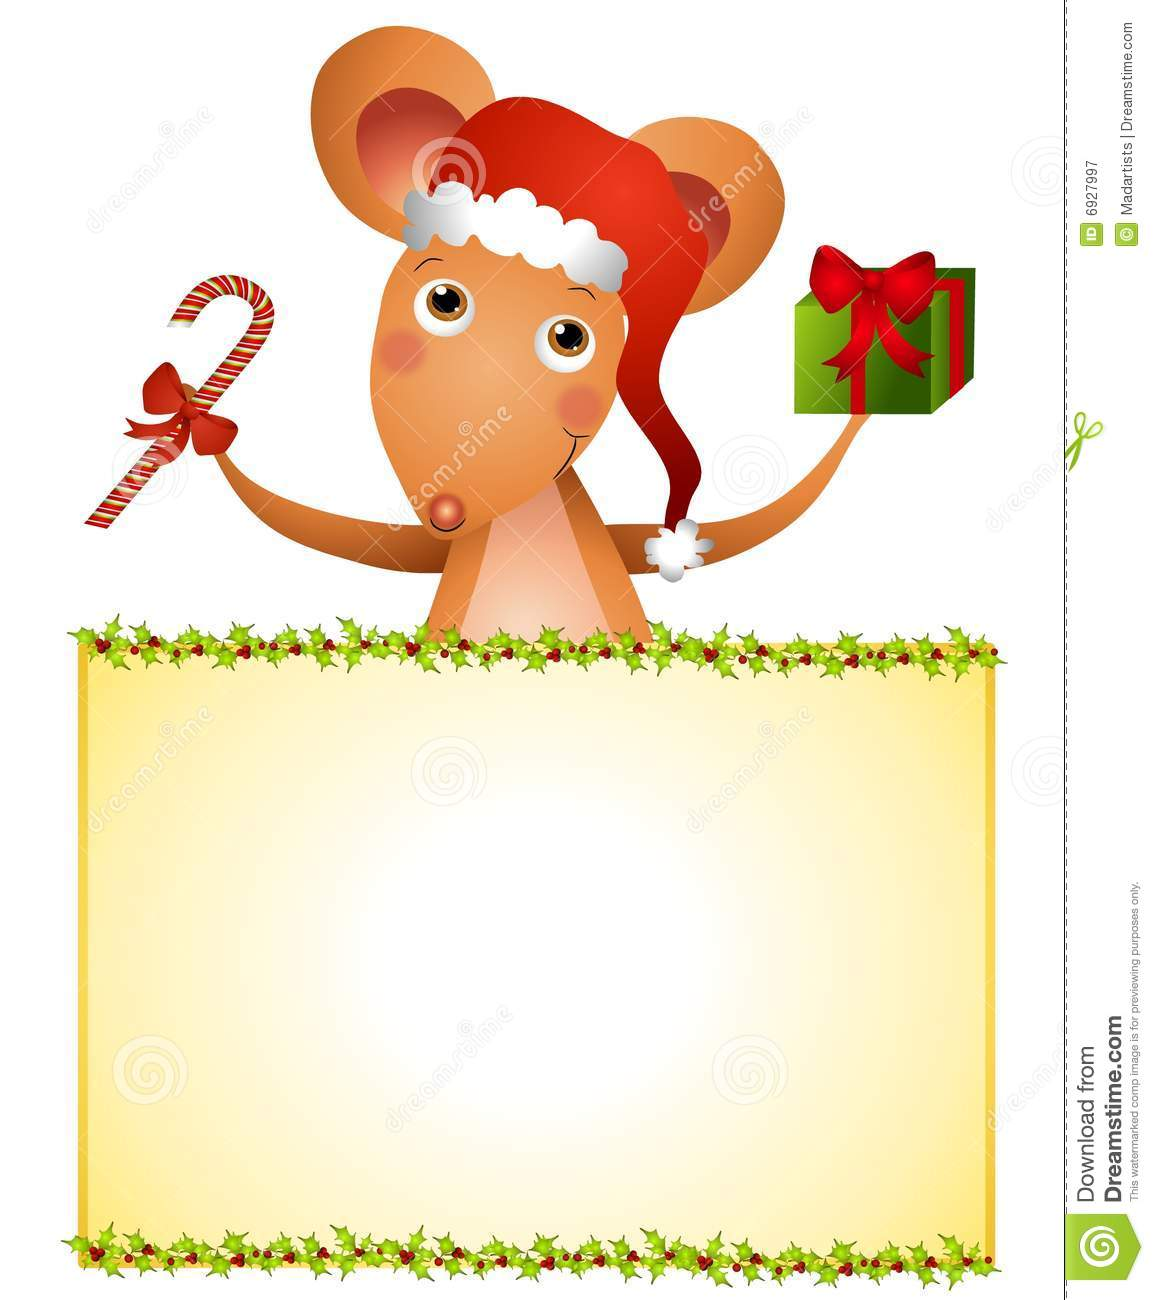 christmas mouse clipart - photo #20